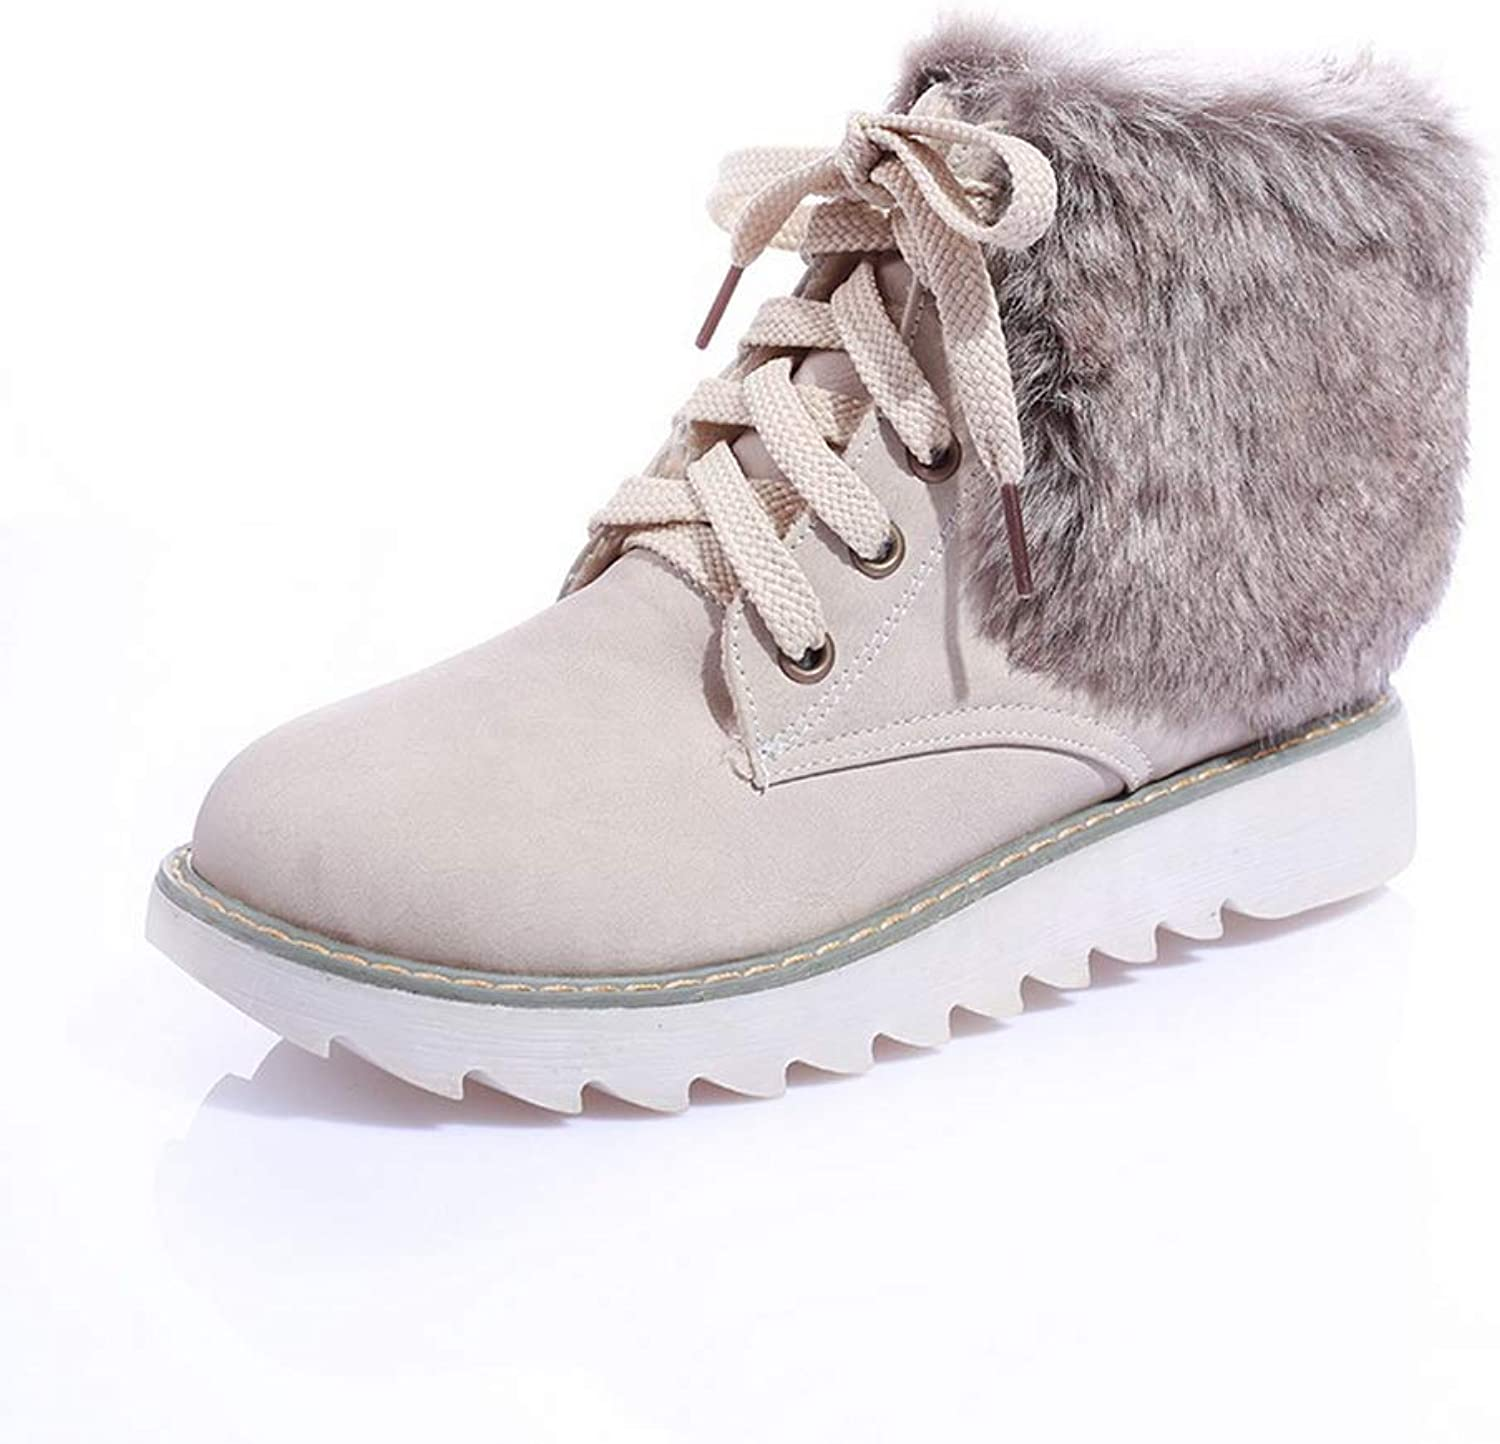 1TO9 Womens Fringed Structured Lace-Up Urethane Boots MNS02692